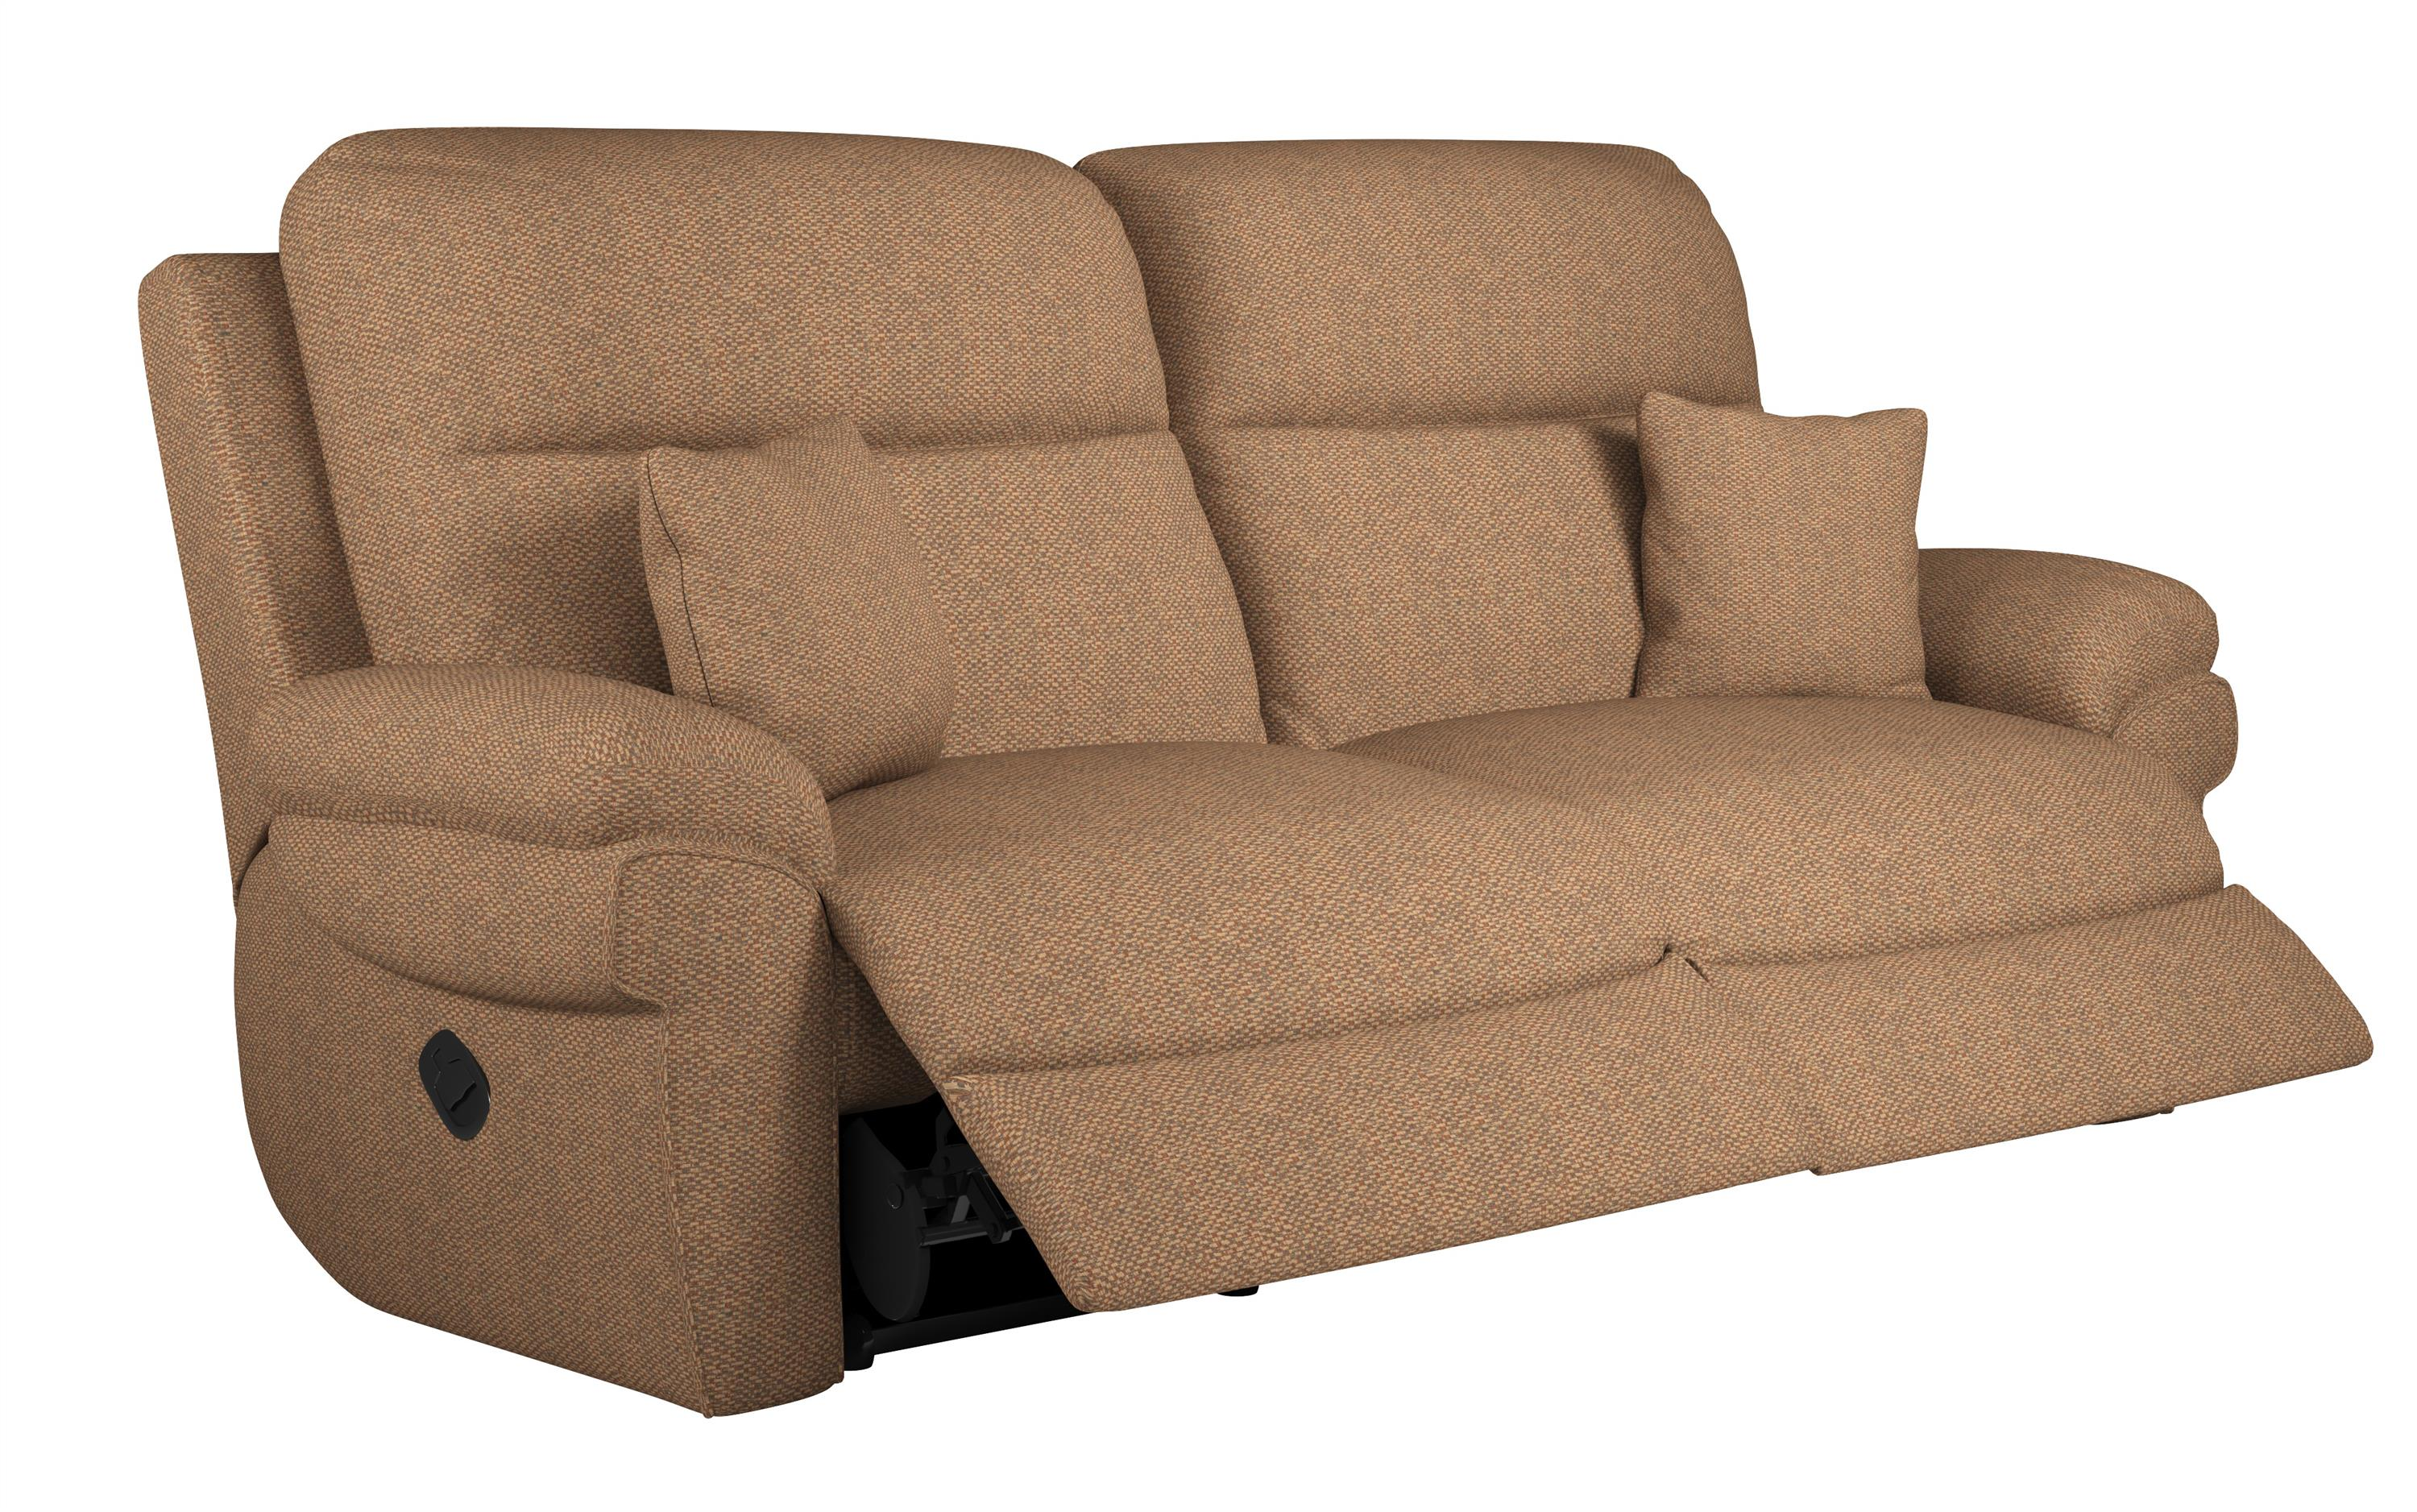 La-Z-Boy Tamla 3 Seater Manual Recliner Sofa